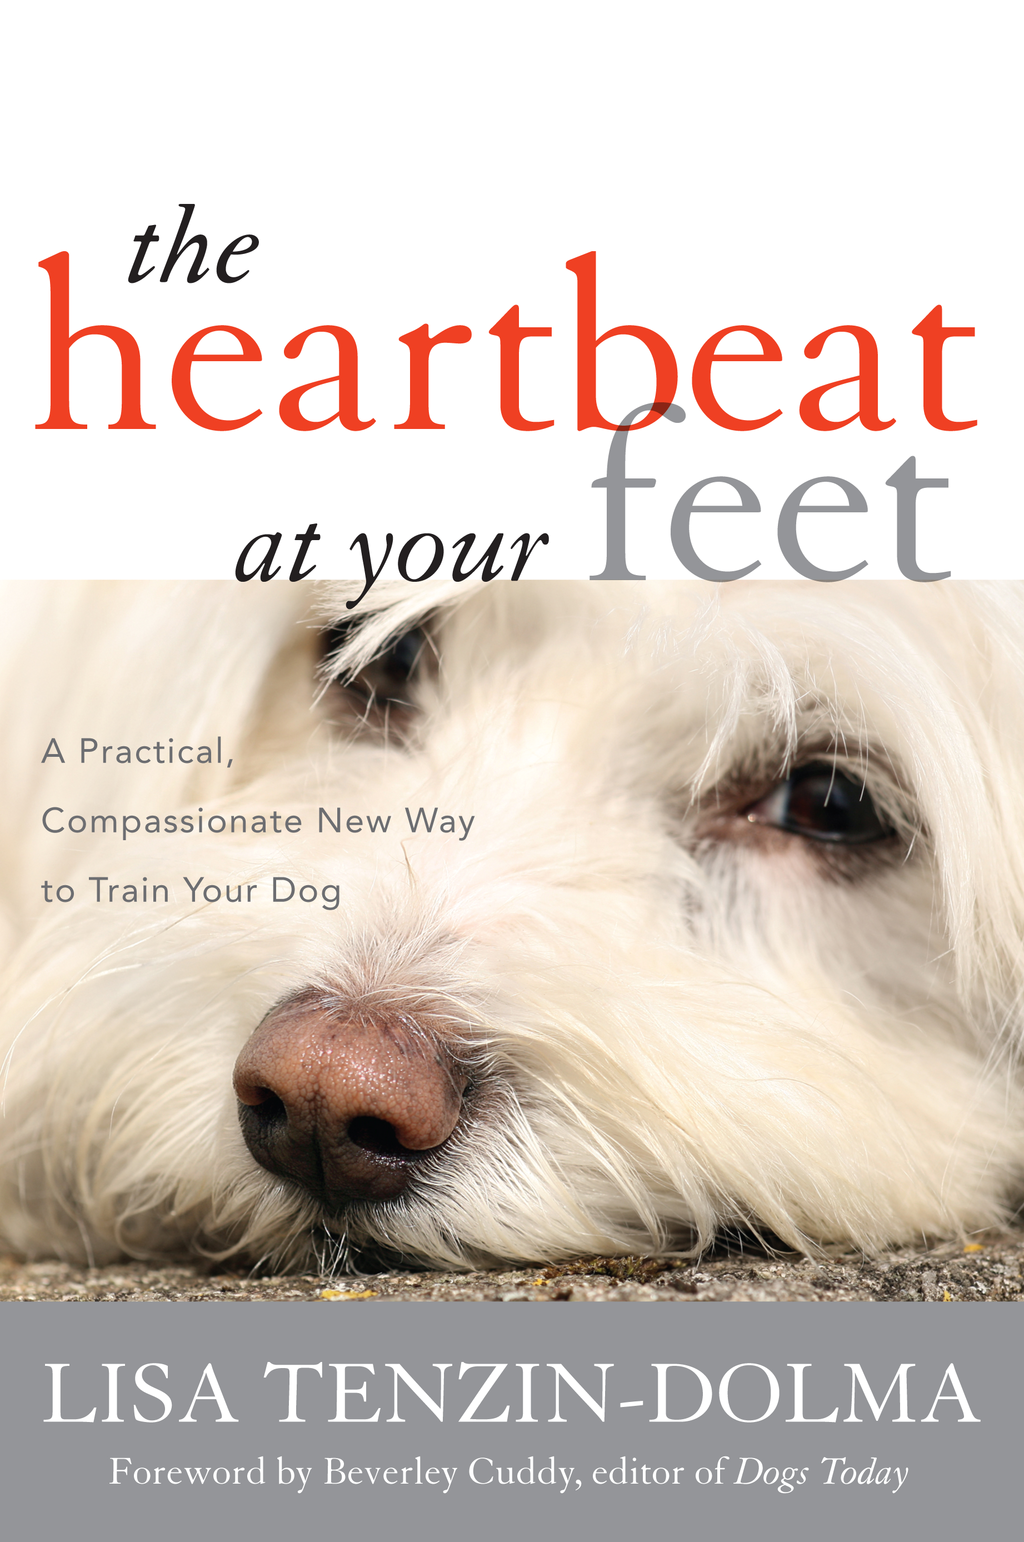 The Heartbeat at Your Feet: A Practical, Compassionate New Way to Train Your Dog